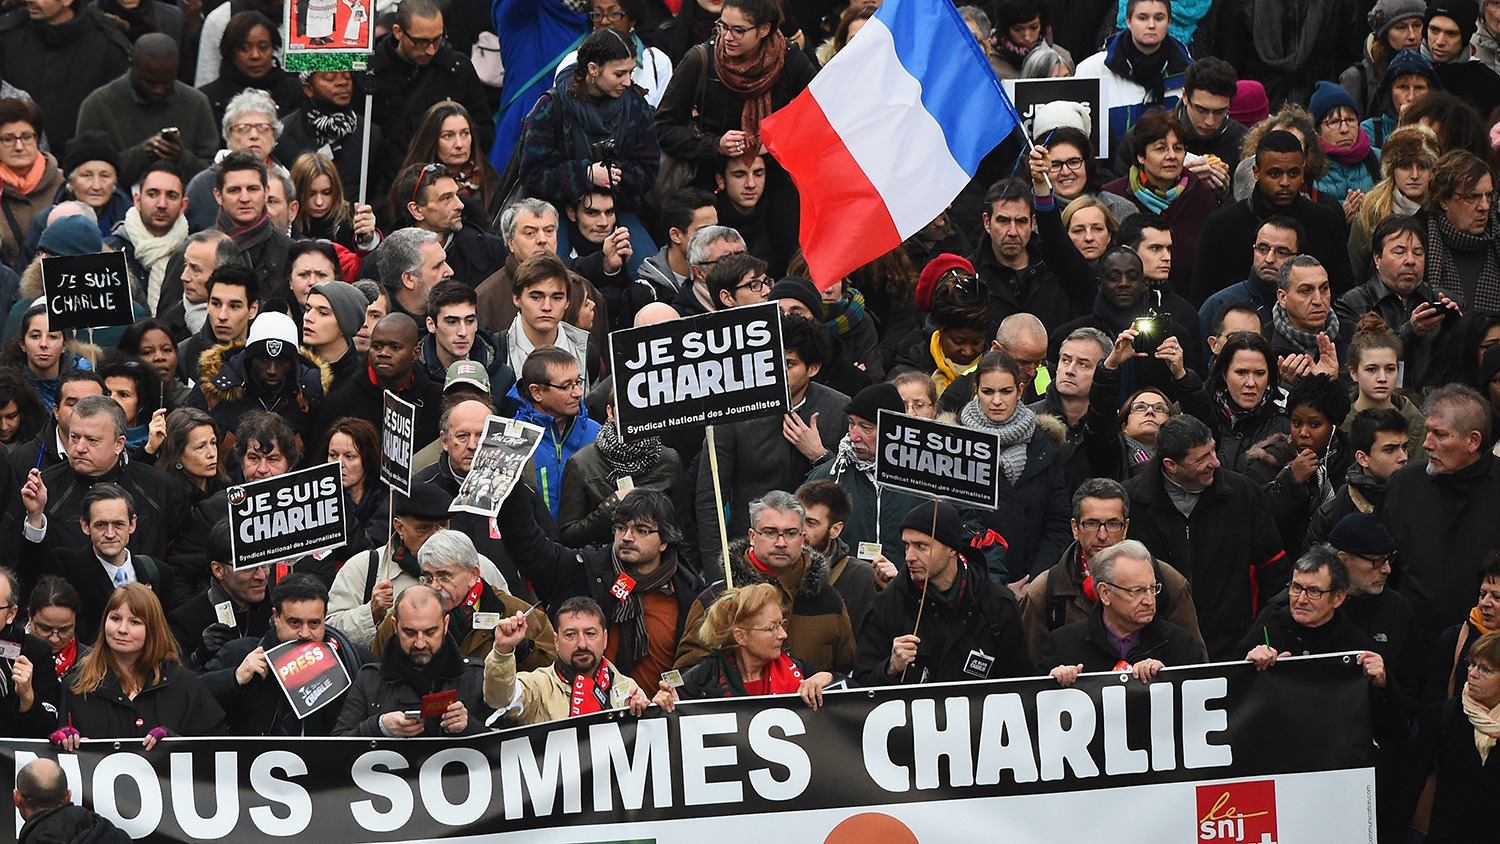 'Nous sommes Charlie'